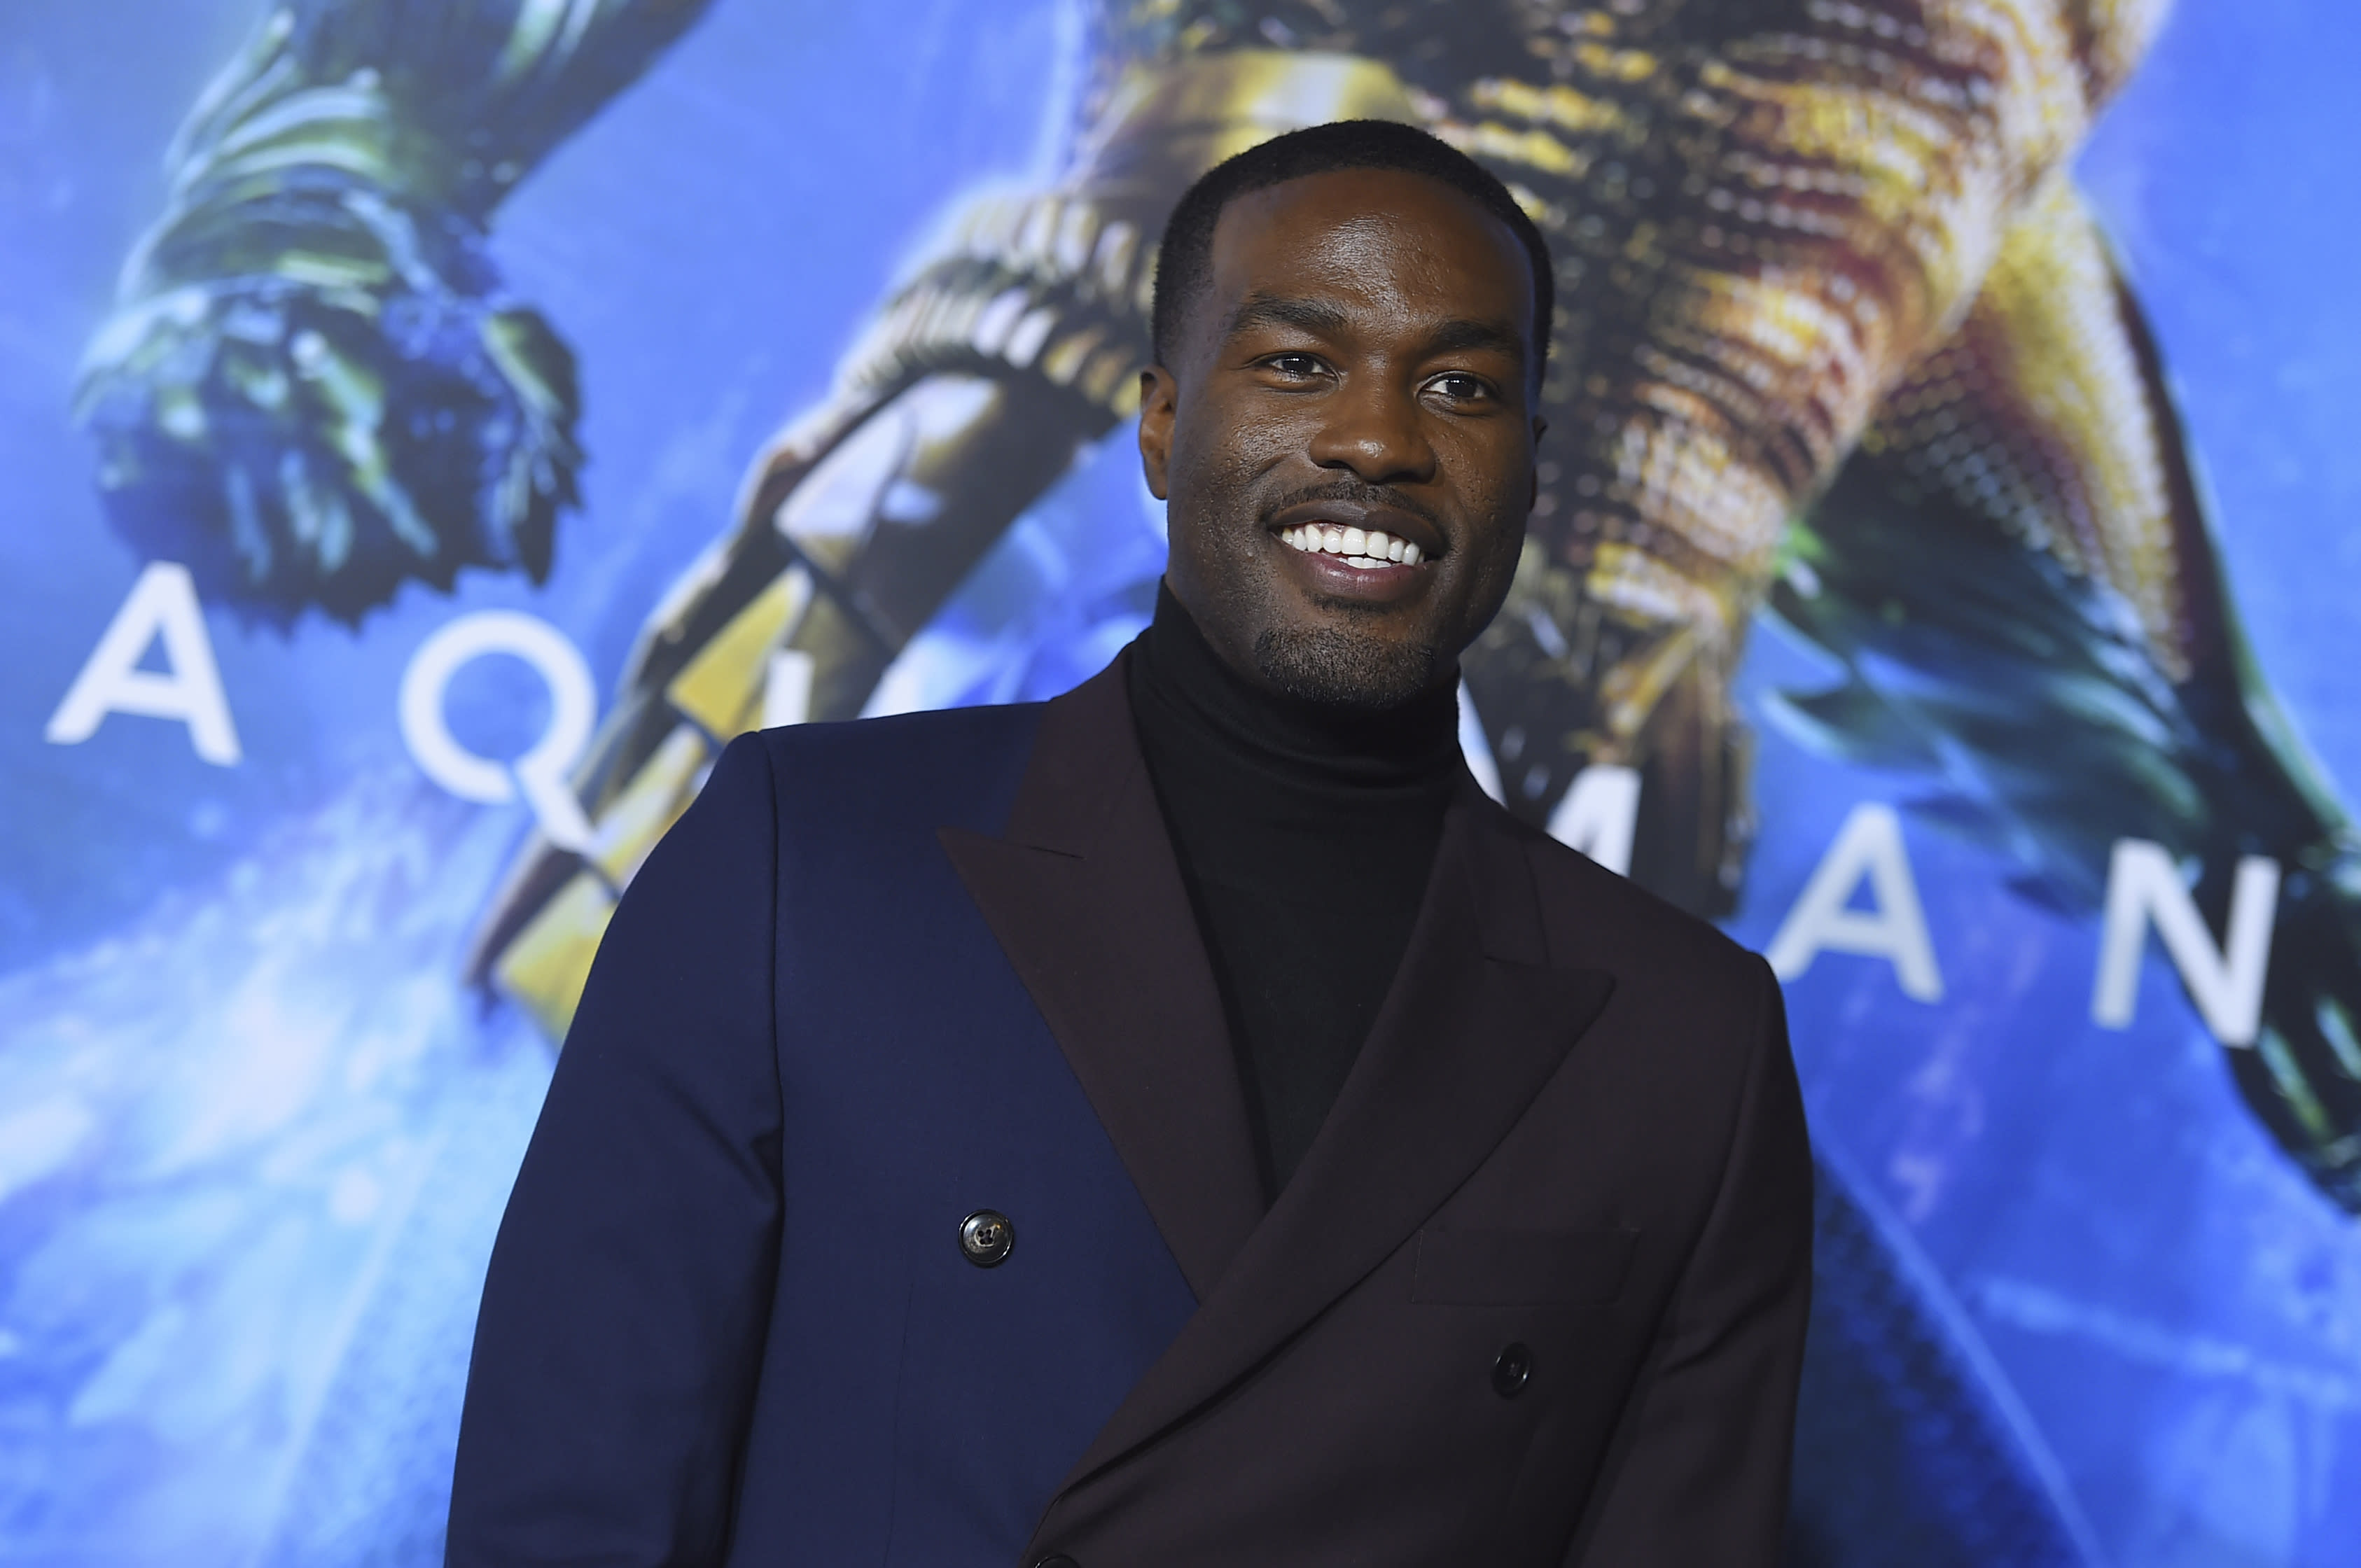 'The Matrix 4' finds its lead actor in 'Aquaman' star Yahya Abdul-Mateen II